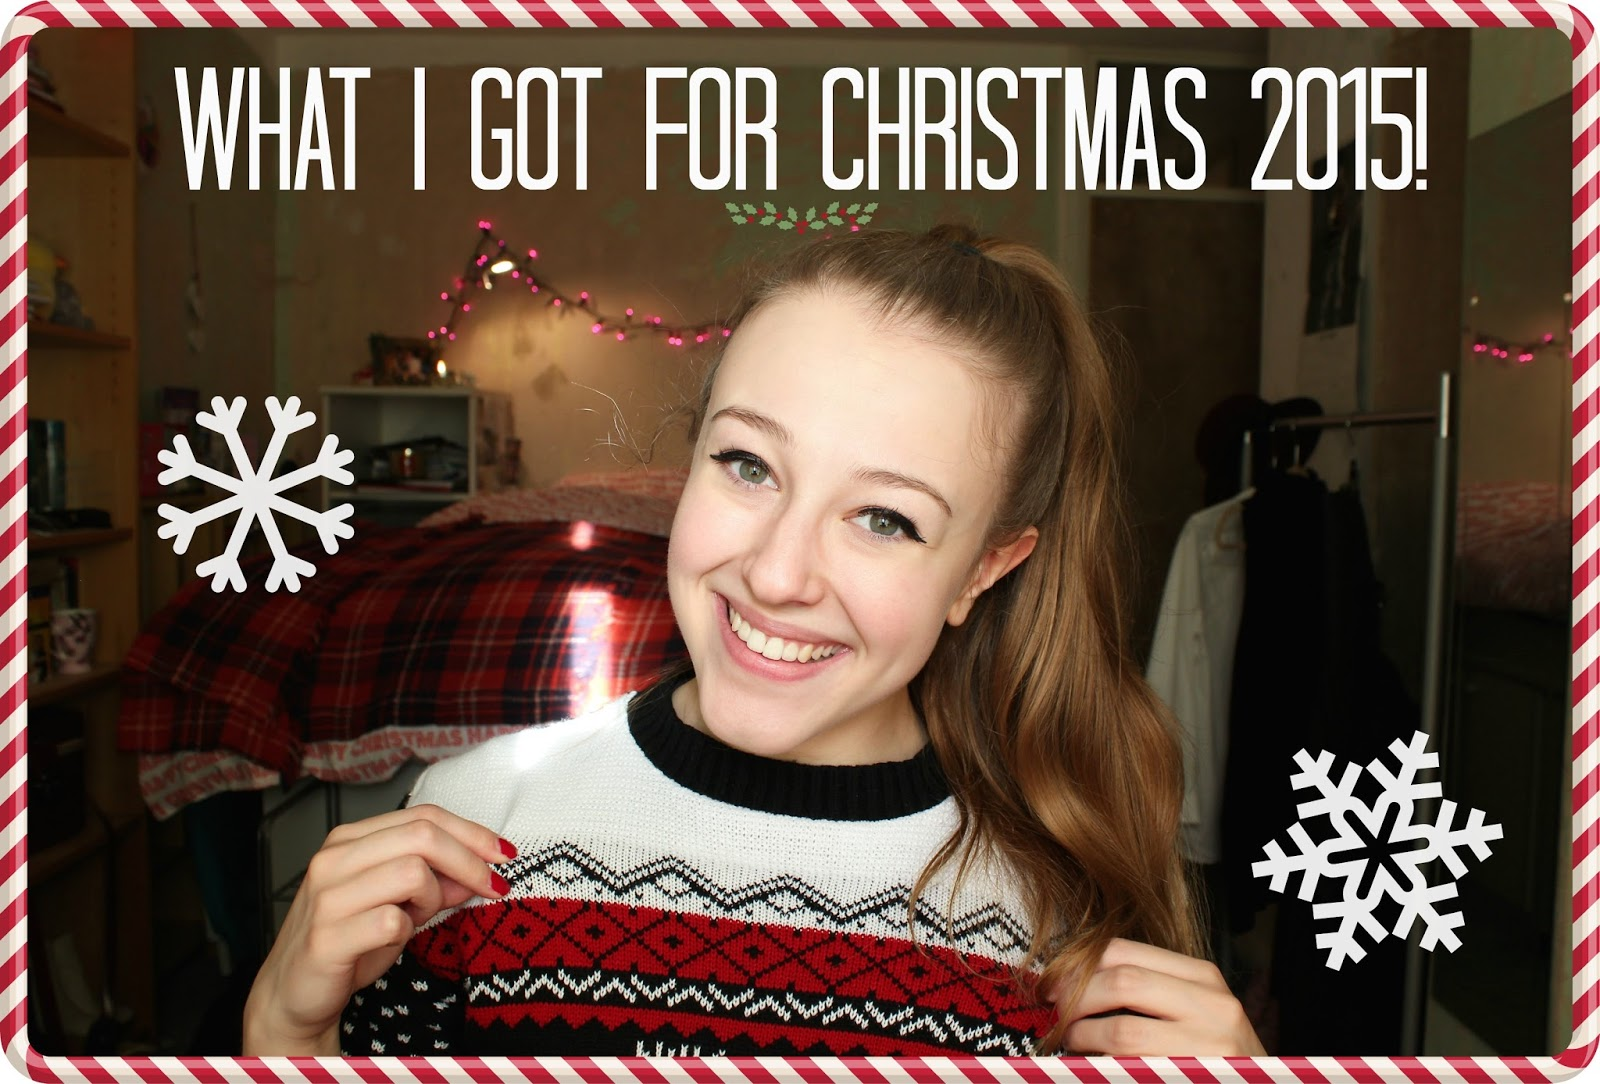 georgie minter-brown, actress, blogger, what i got for christmas, 2015, christmas, presents, gifts, youtube, youtuber